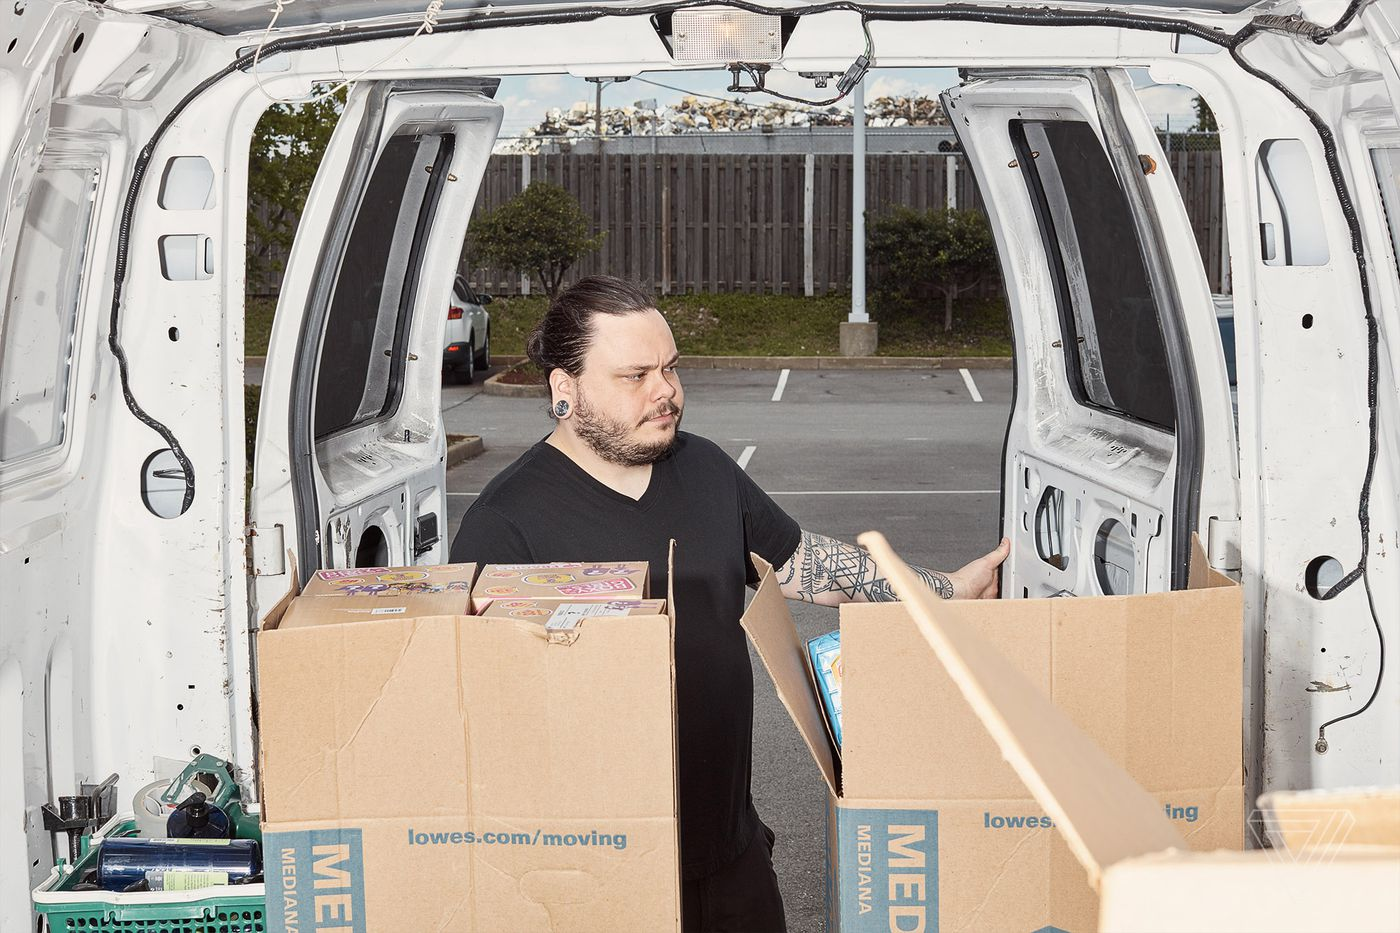 Nomads travel to America's Walmarts to stock Amazon's shelves - The